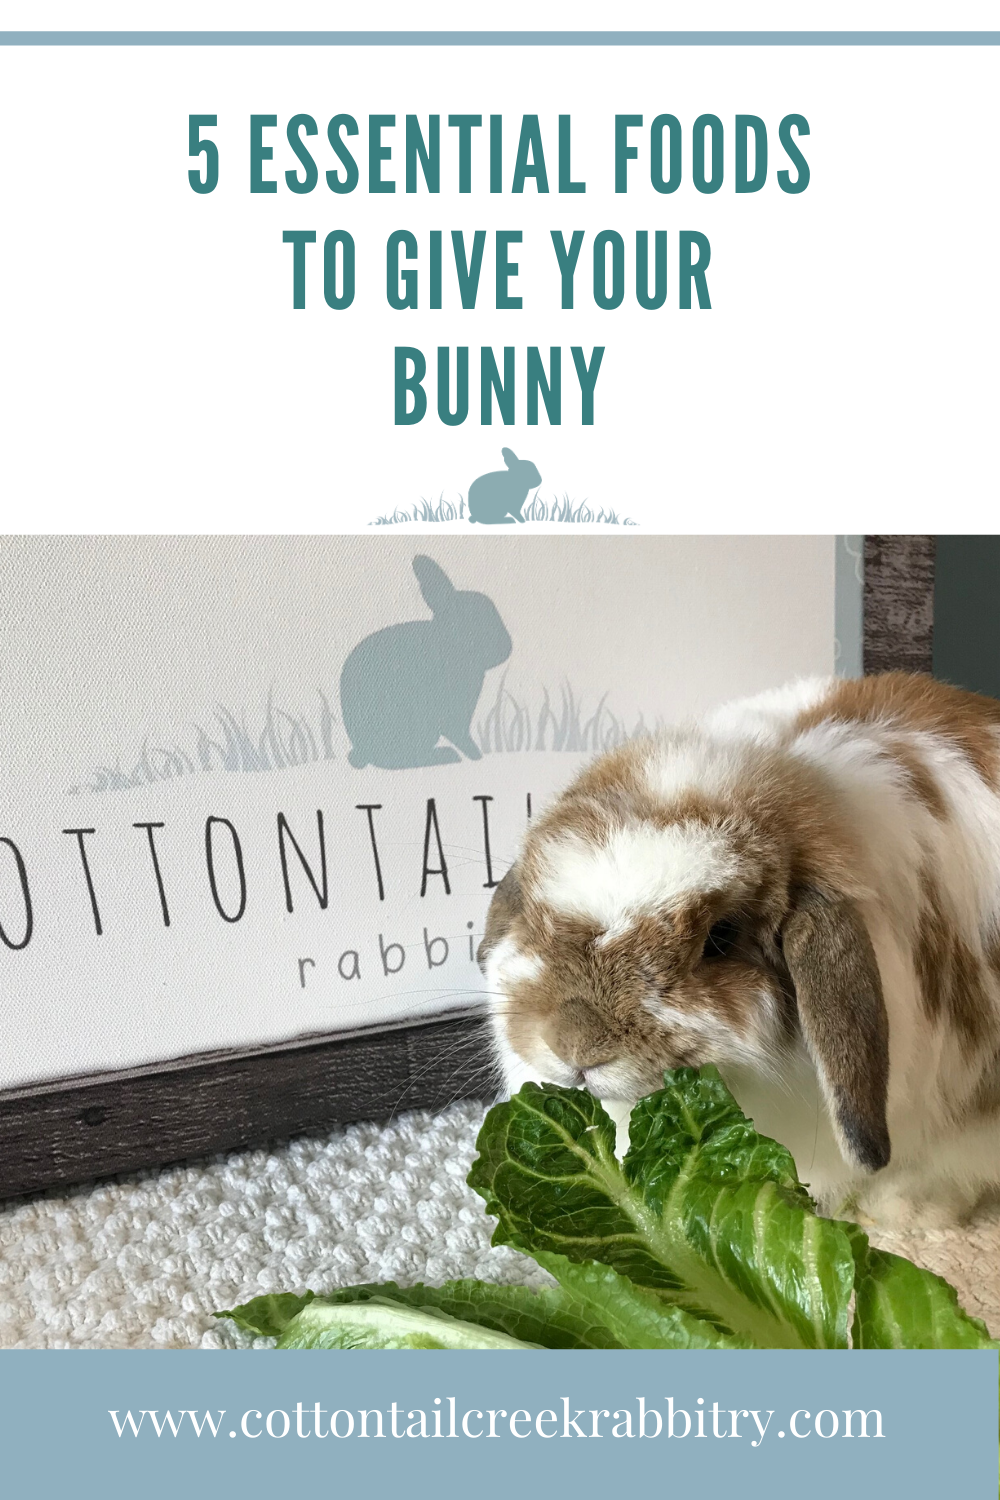 5 essential foods to give your bunny